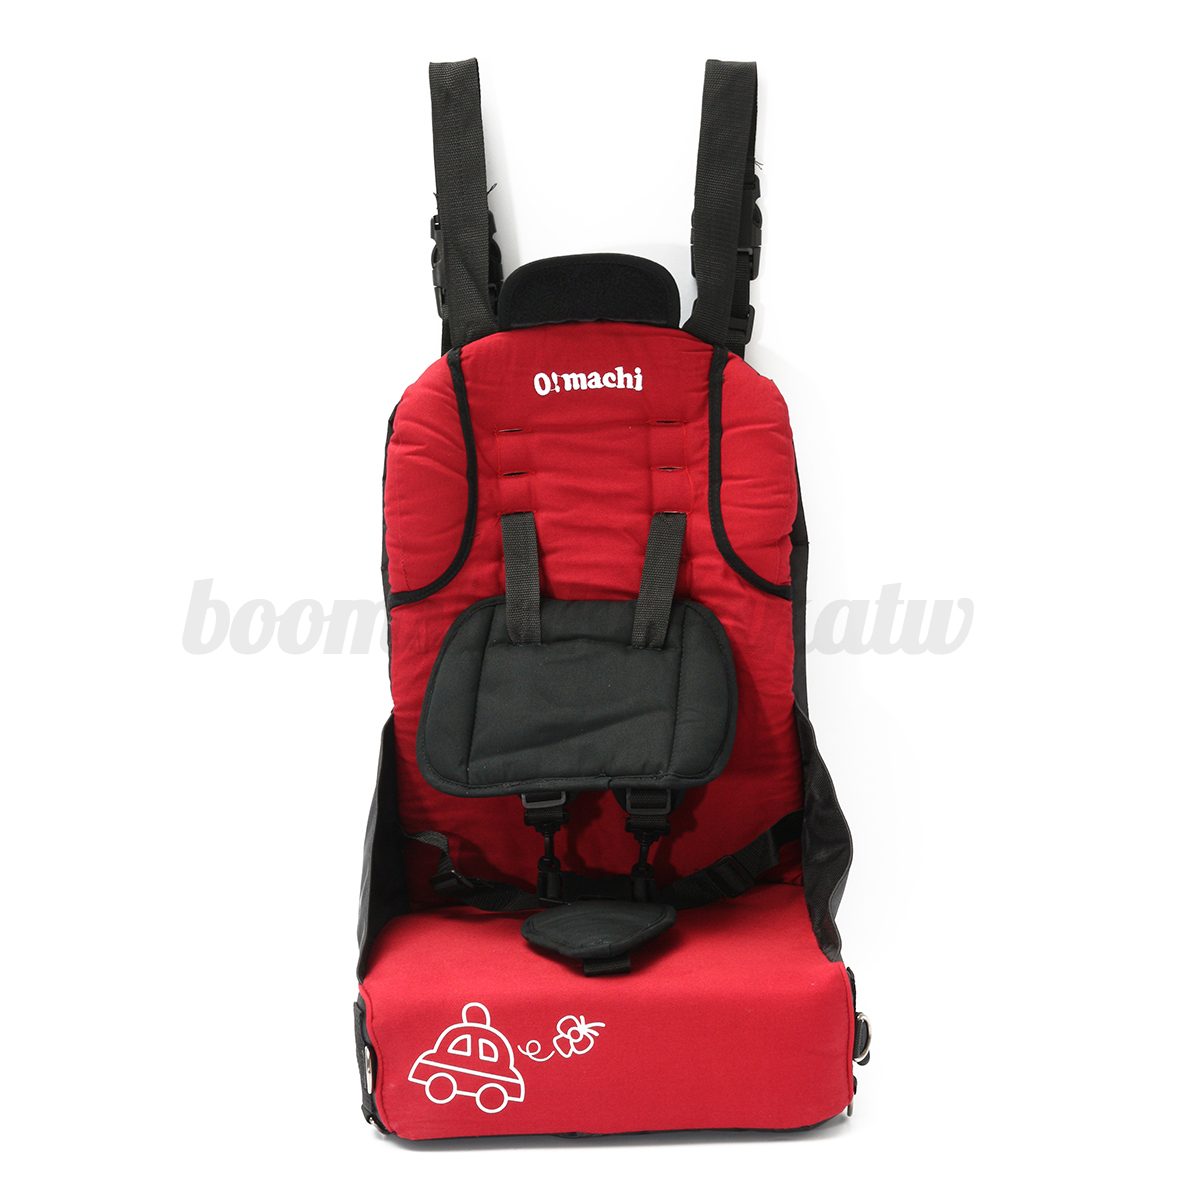 Au Portable Safety Baby Car Seat Toddler Infant